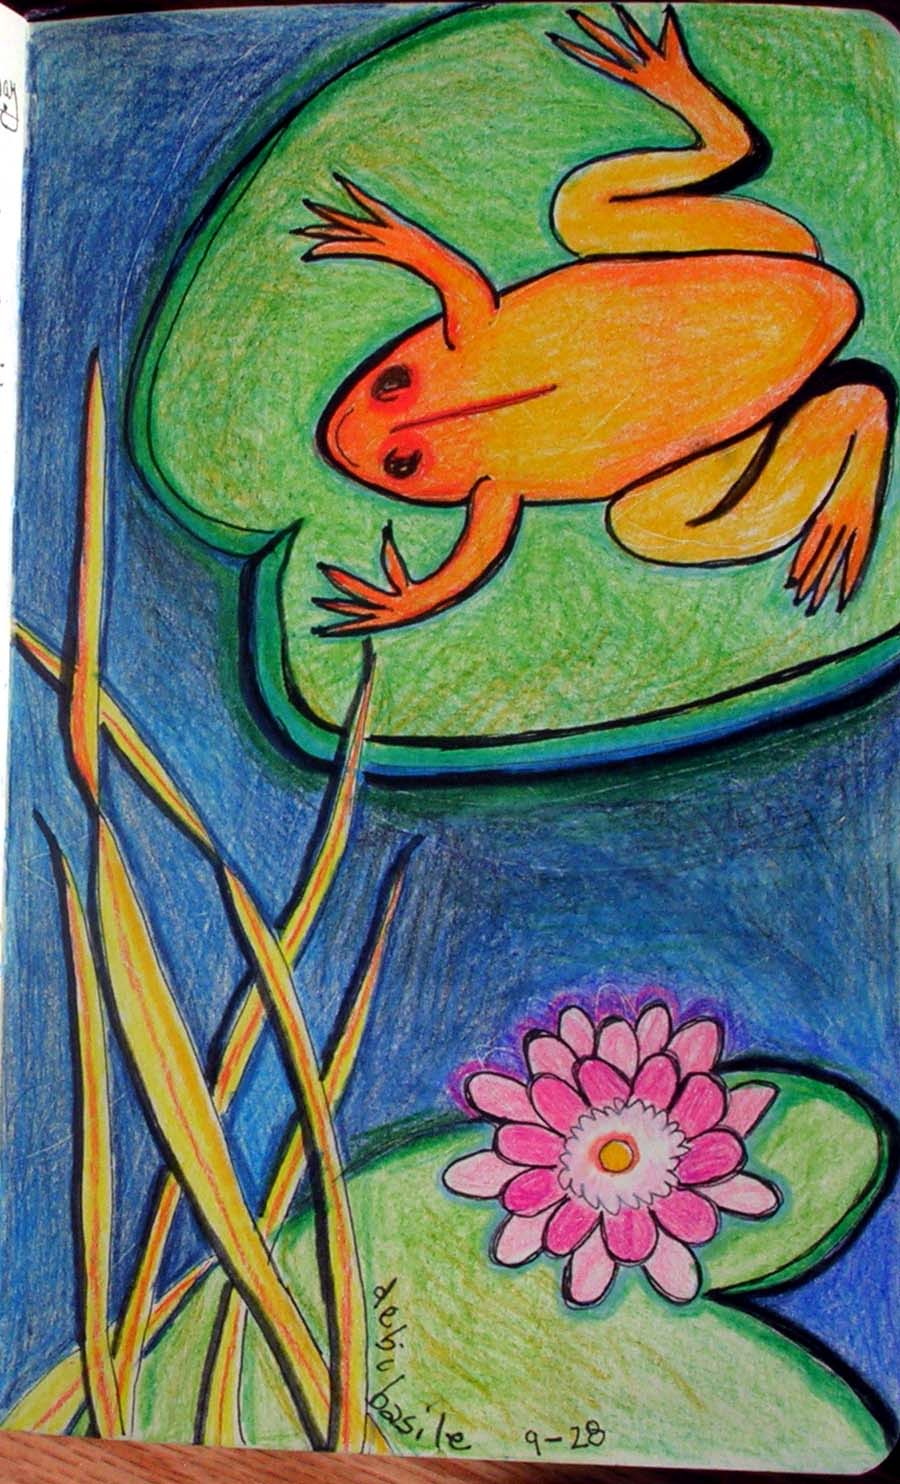 The Frog and the Lotus